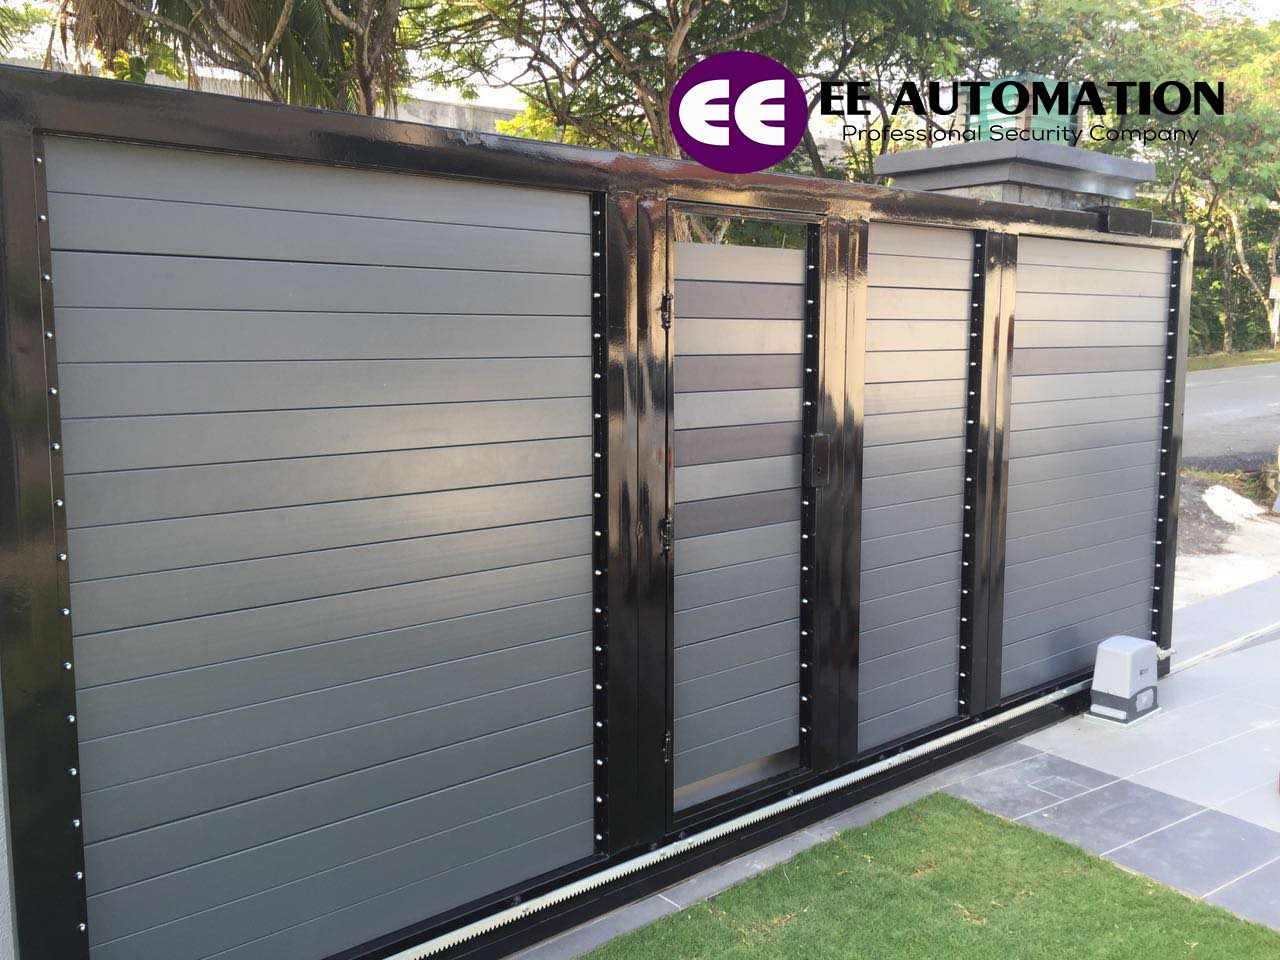 Home Design Gate Ideas: Top Autogate Supplier In Puchong & KL, Malaysia